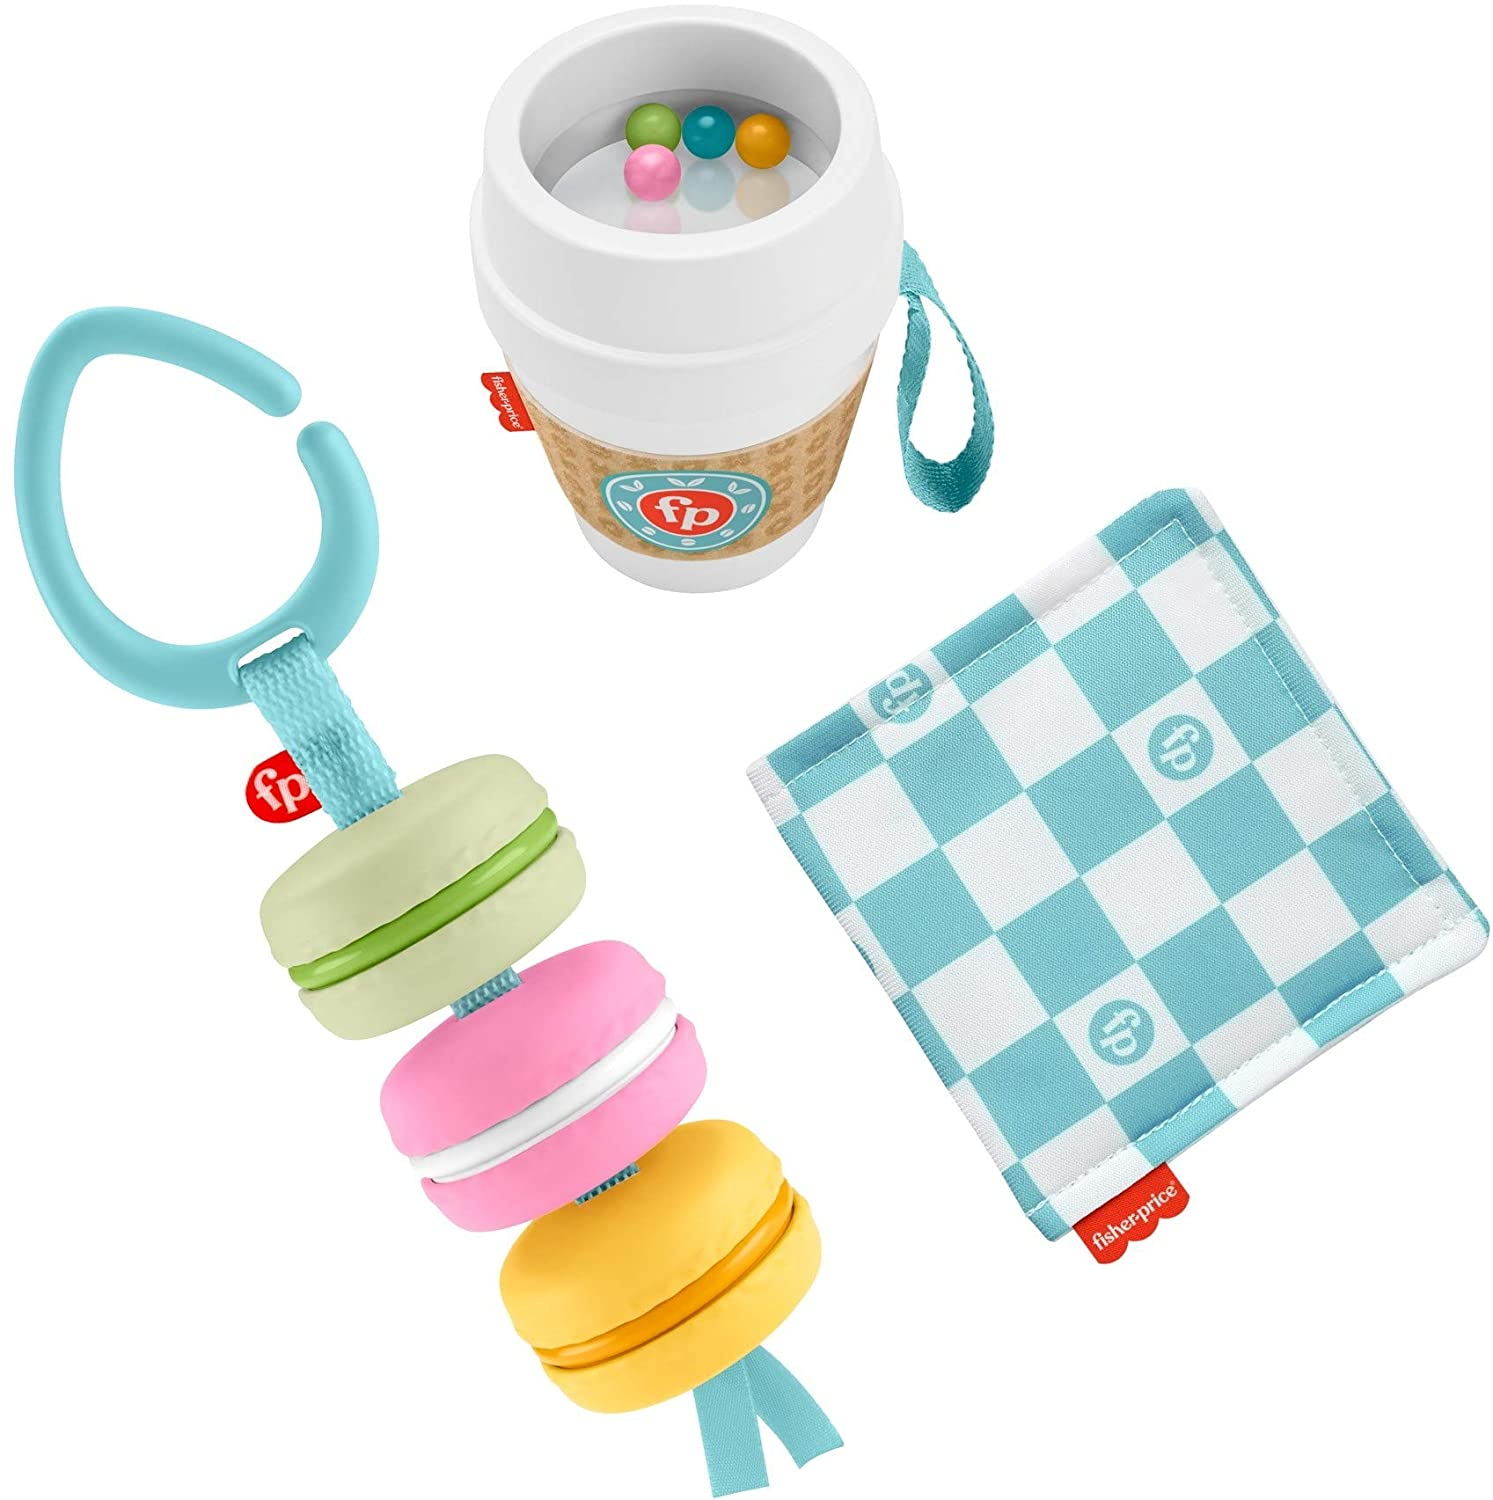 Fisher-Price Bakery Treats Gift Set, 3 Food-Themed Infant Toys & Teether for Babies Ages 3 Months & Up